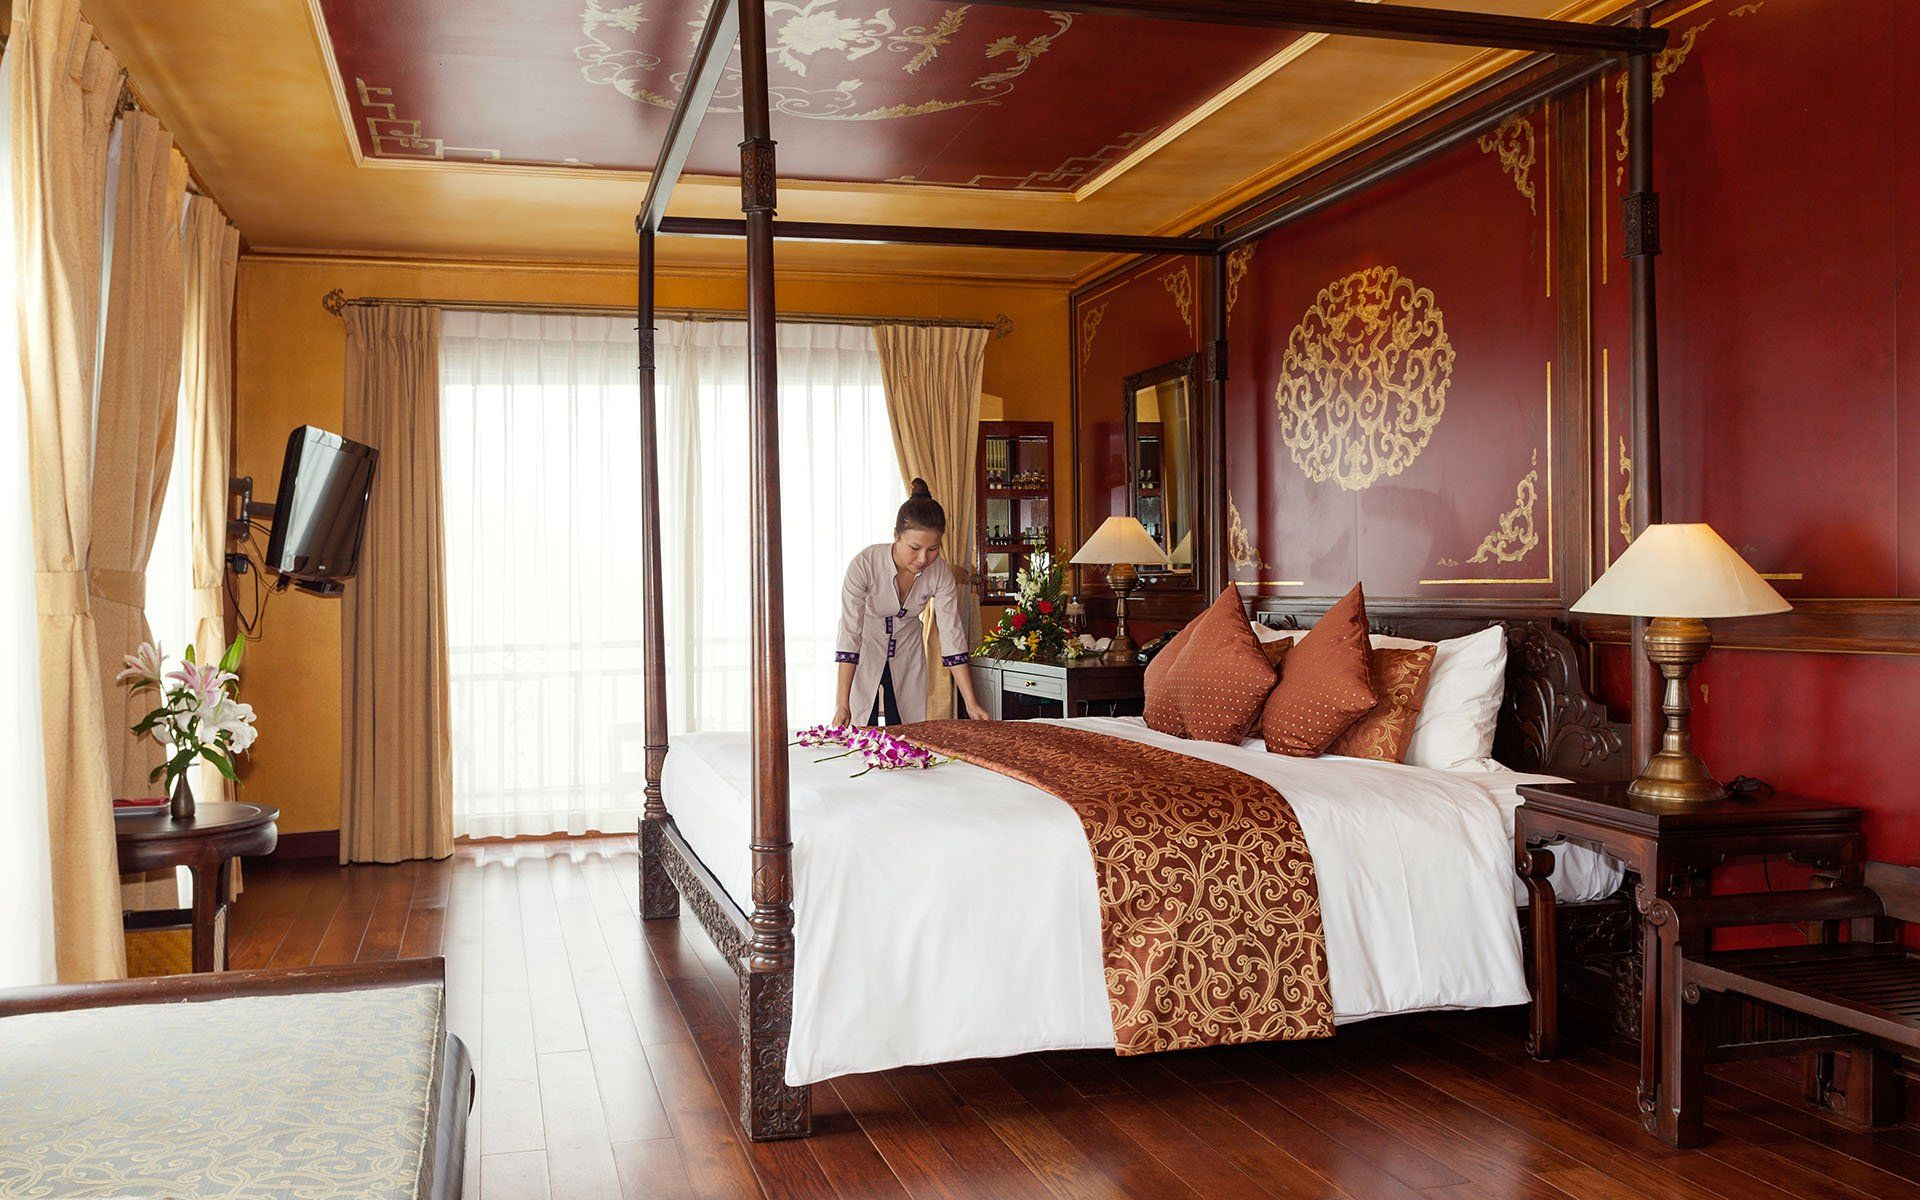 Heritage Line Violet Luxury Hotel Offers Cruise